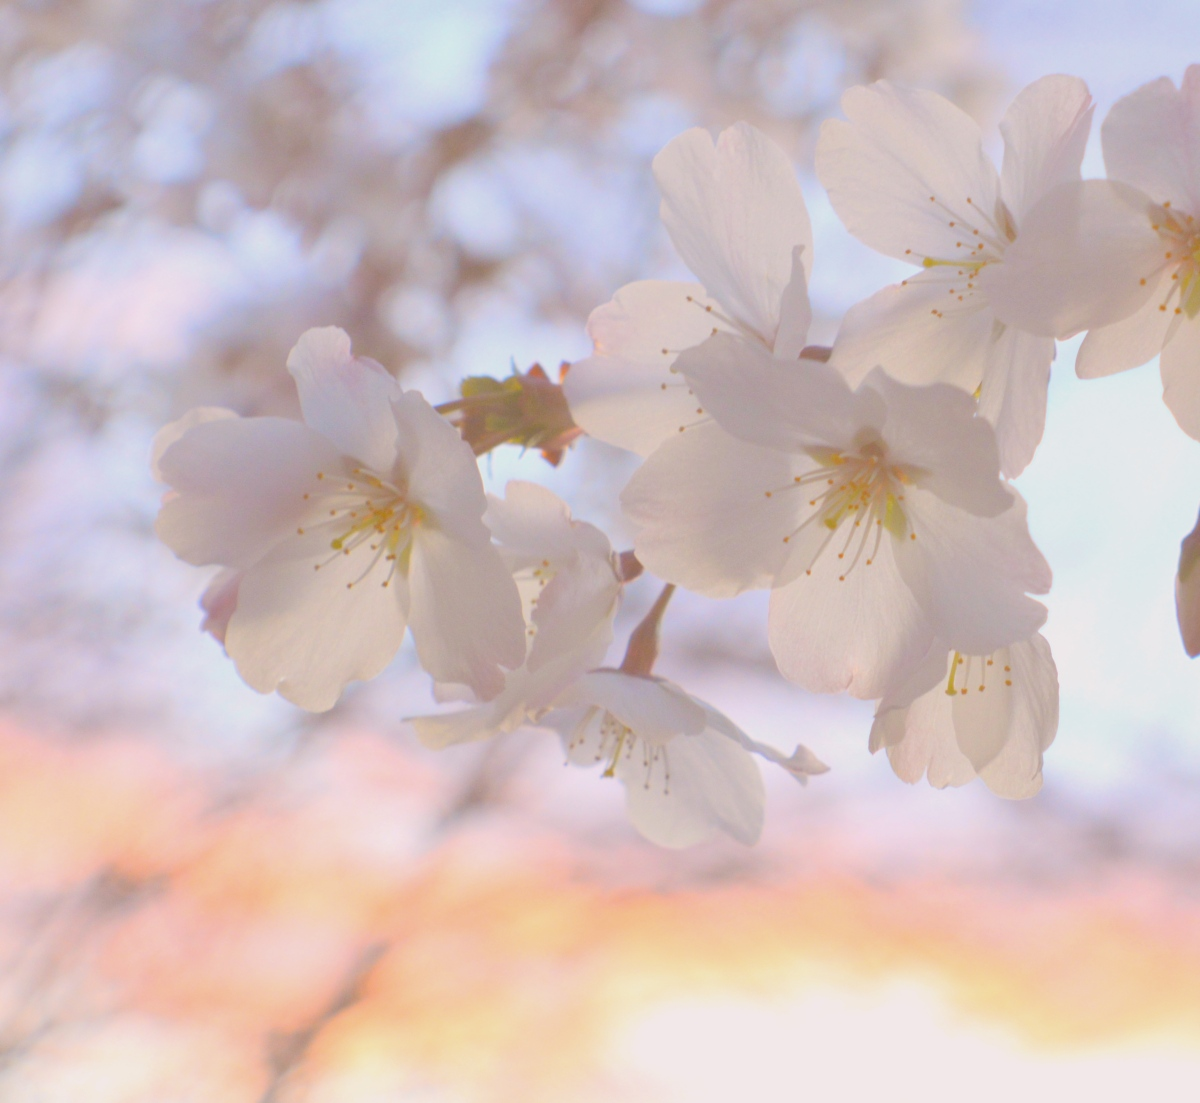 Chasing the cherry blossom: Getting the most out of sakura season in Japan!